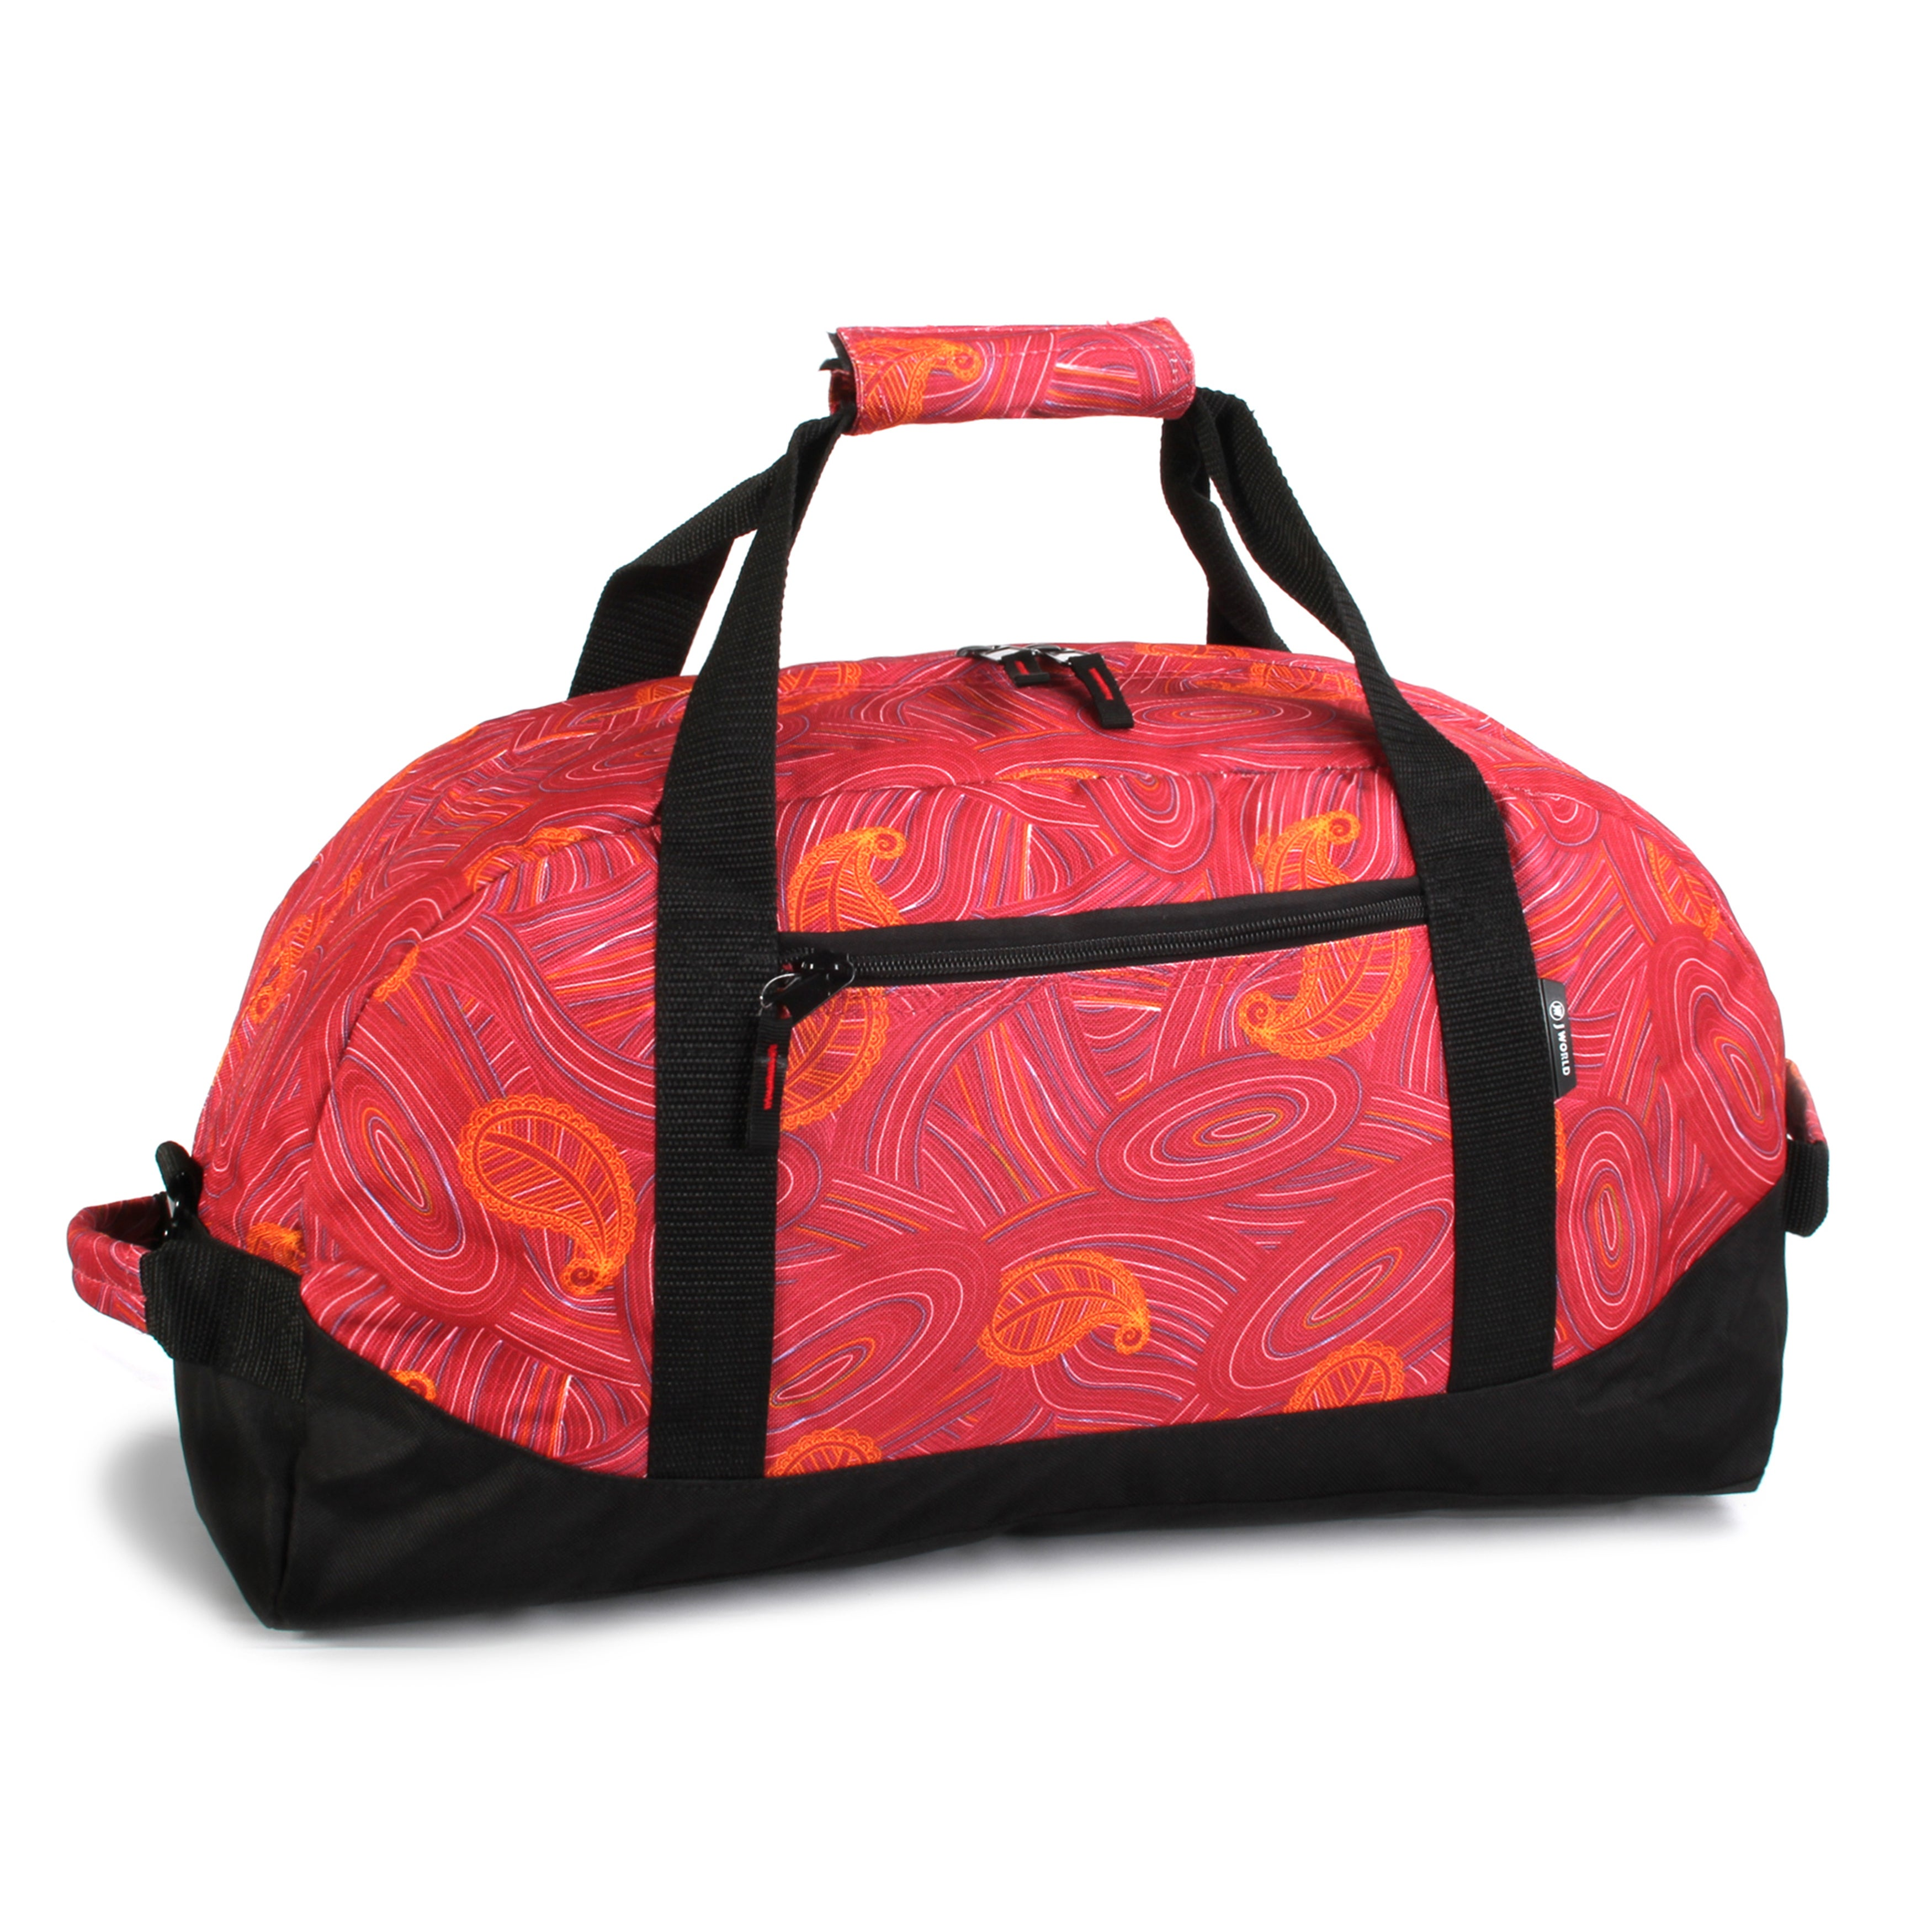 97ccdd4e11 J World Duffel Bags